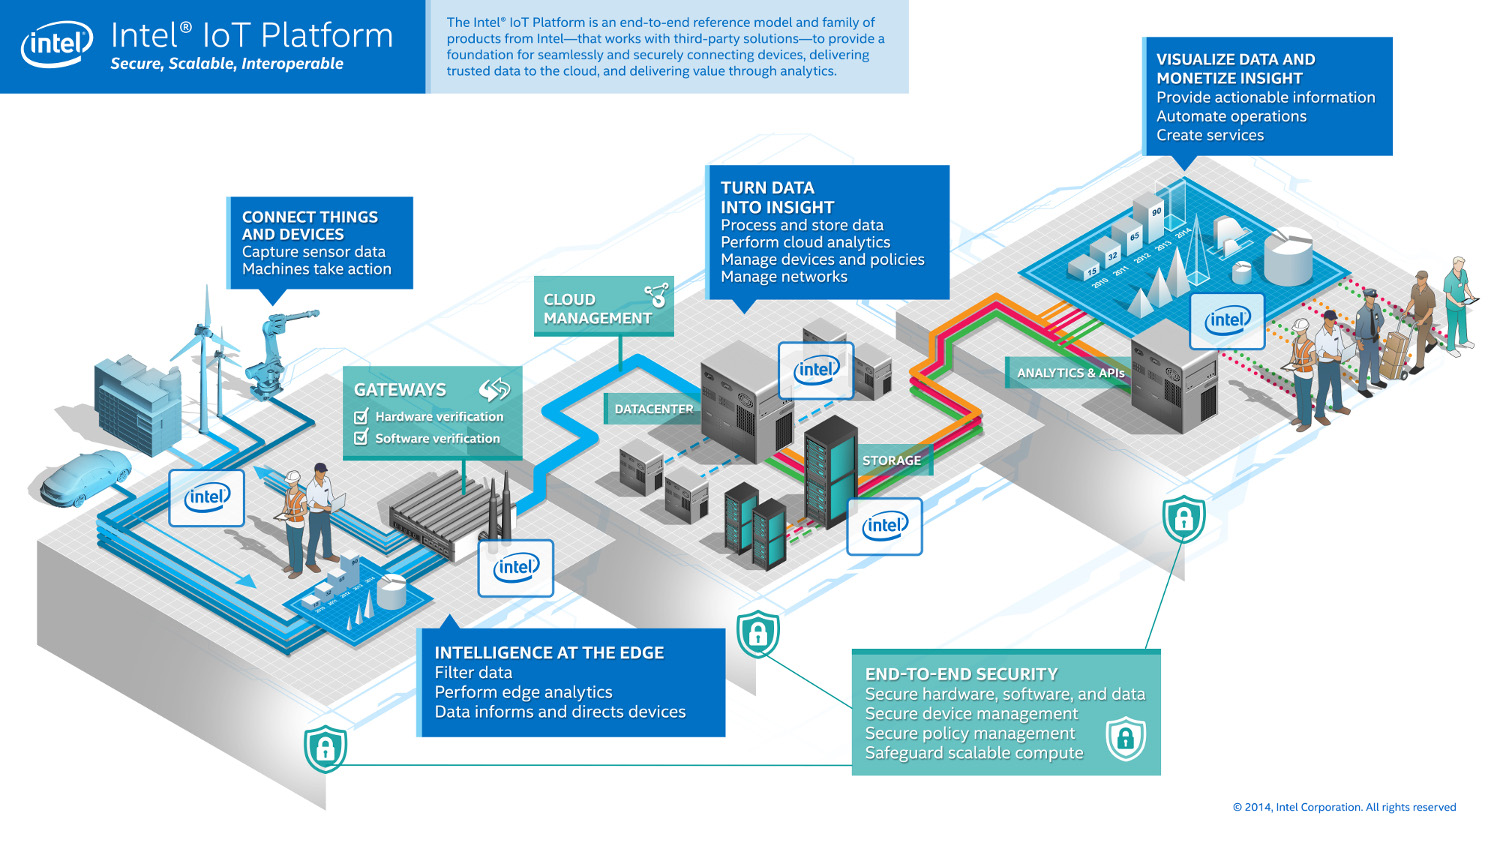 Intel extends its Internet-of-Things ecosystem